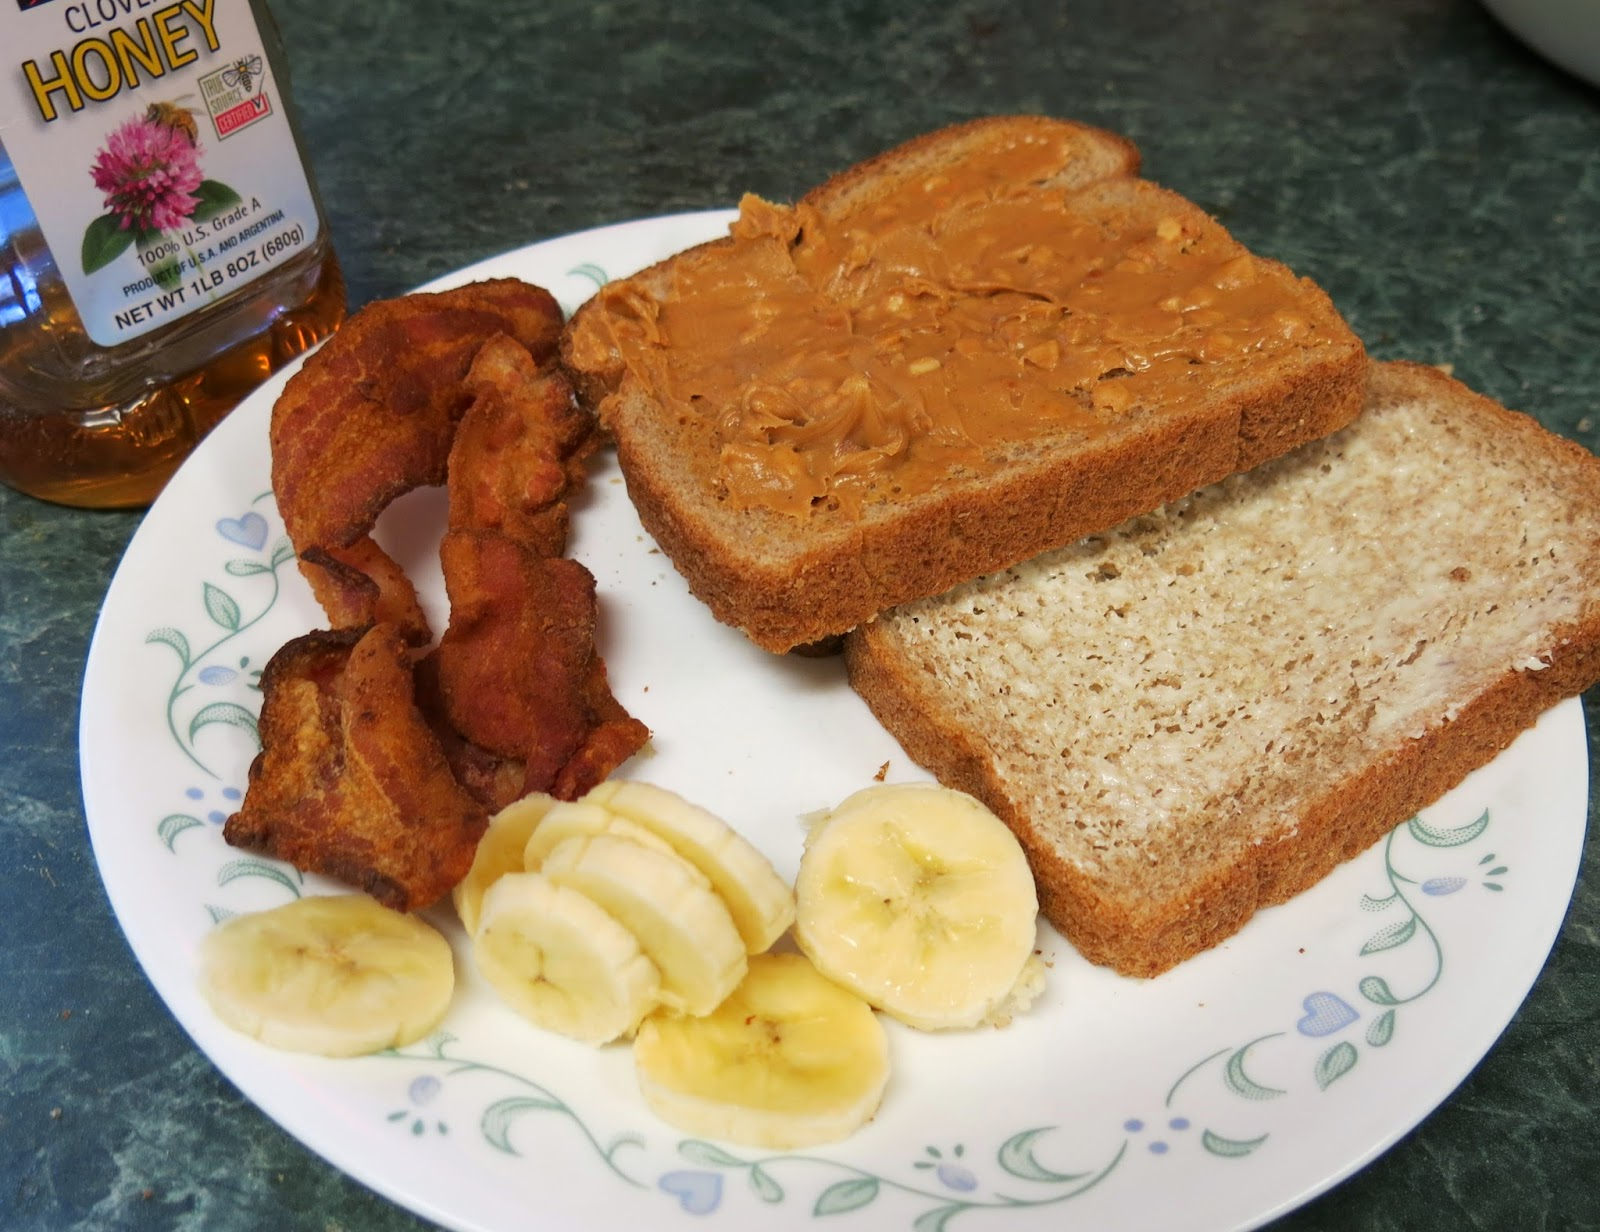 ... : Peanut Butter, Banana, Honey and Bacon Grilled Sandwich - The Elvis